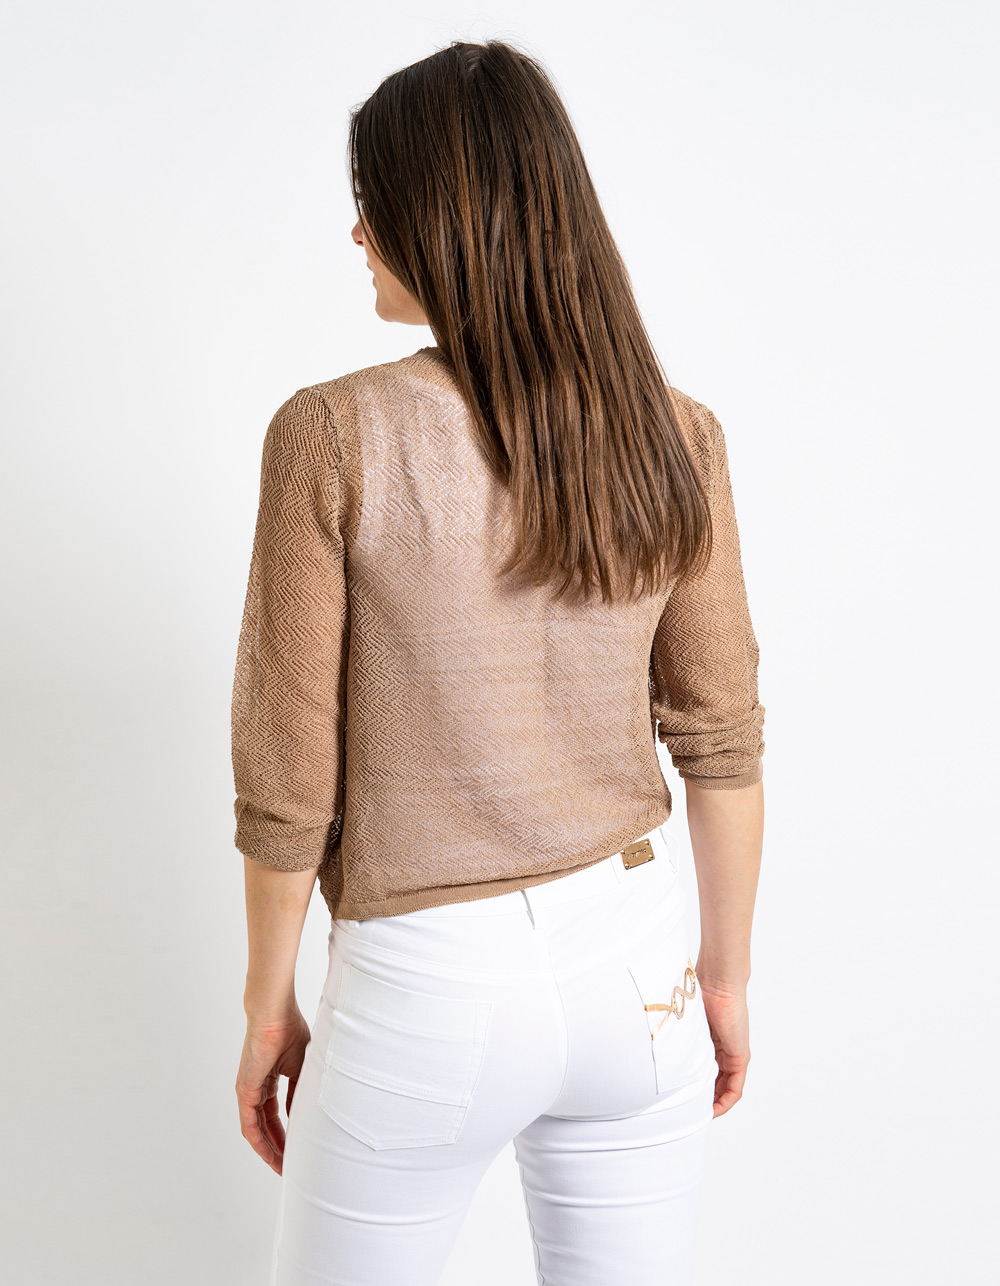 Cardigan cuello pico cruzado - Backside